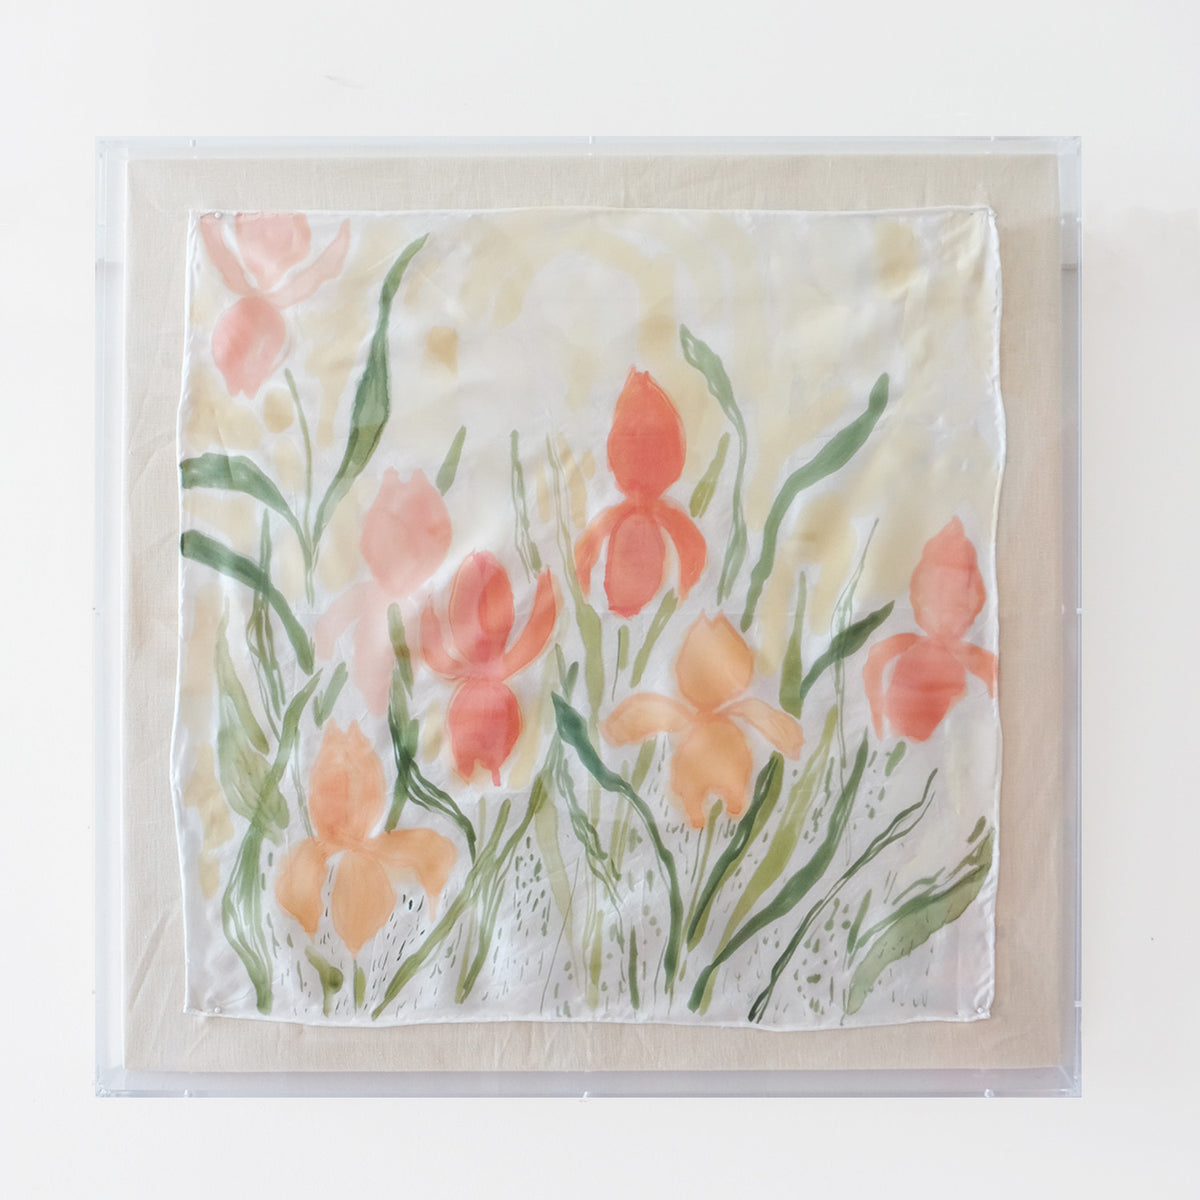 Framed Silk No. 5 - 24 x 24